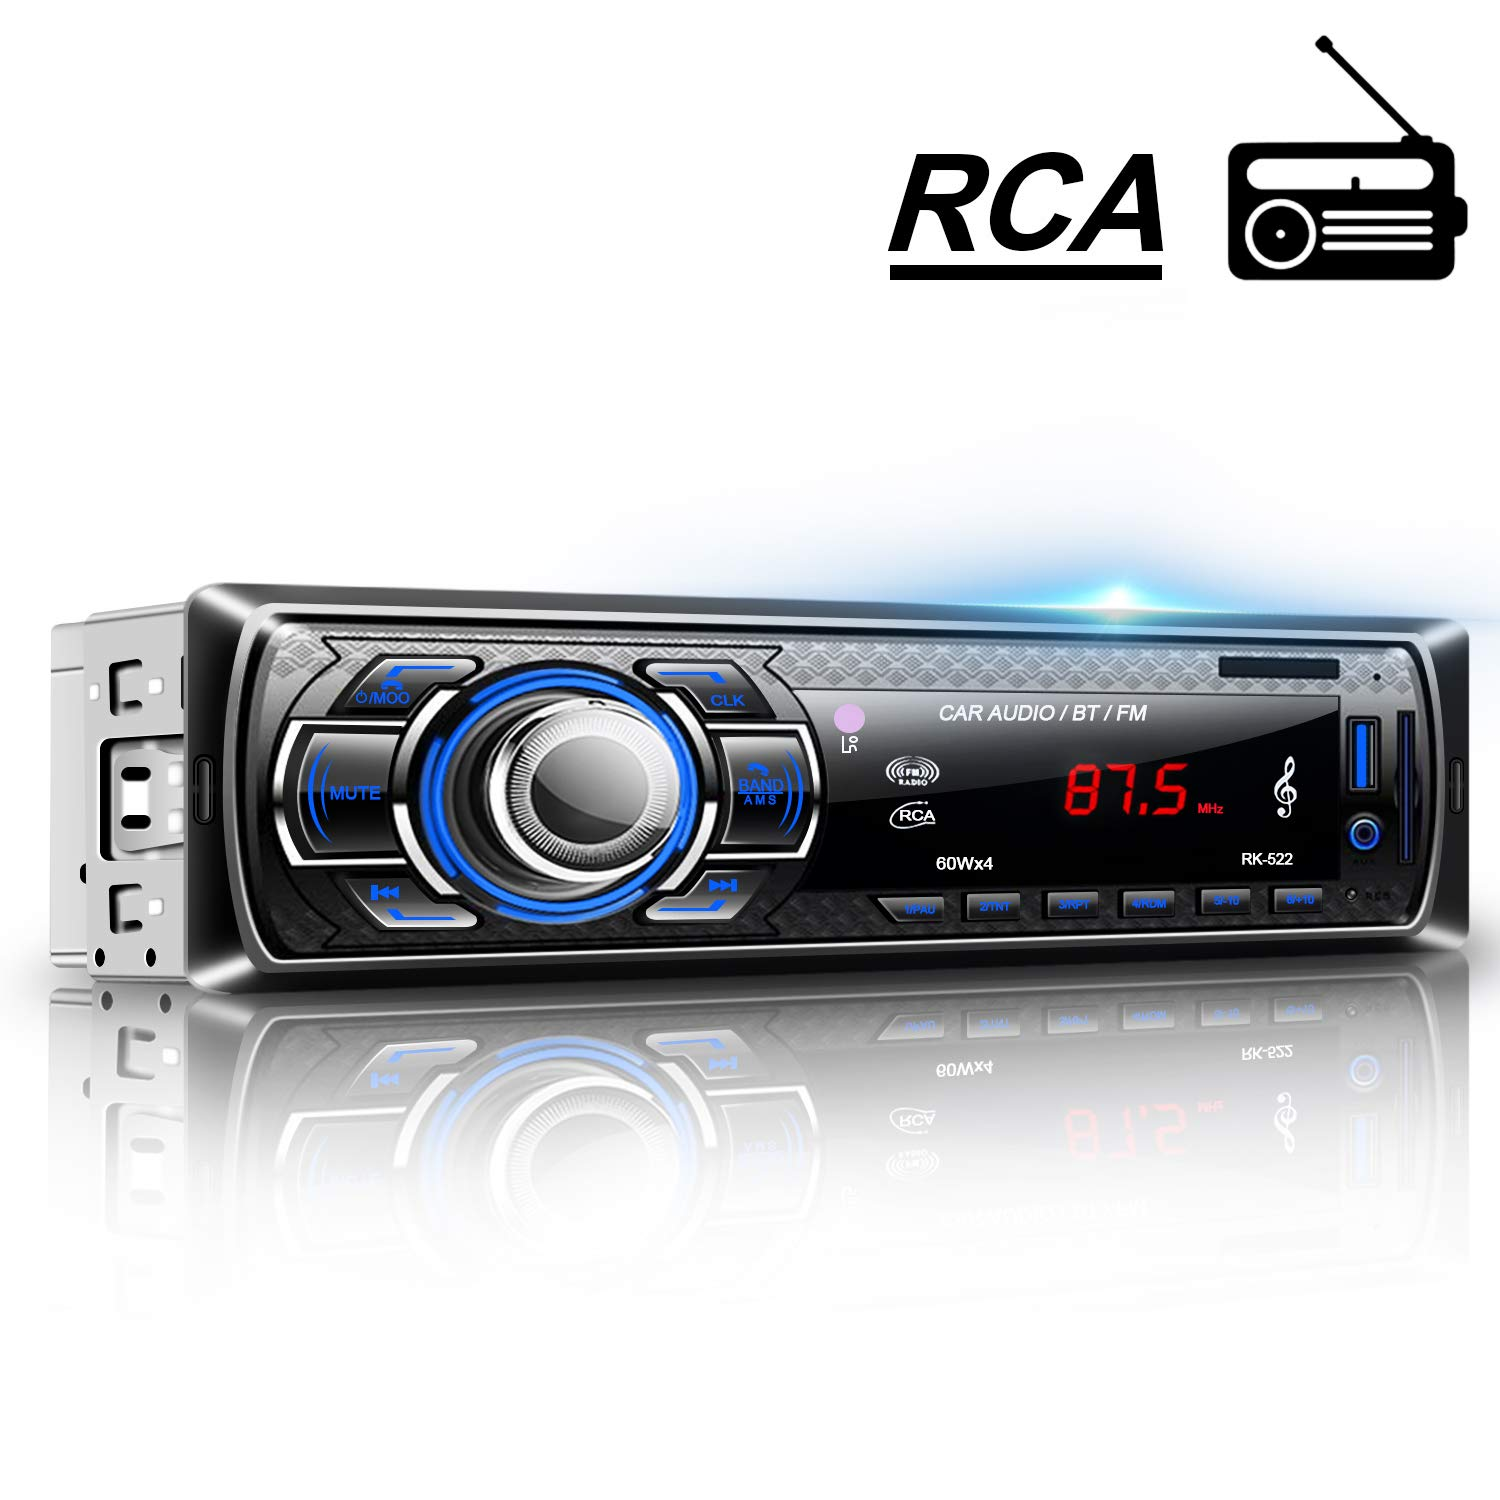 LESHP Car Stereo Bluetooth Car Radio MP3 Player FM Radio Single DIN with Remote Control Support Hands-free Call USB SD FM AUX DC12V for Installing at Center Console Car SUV